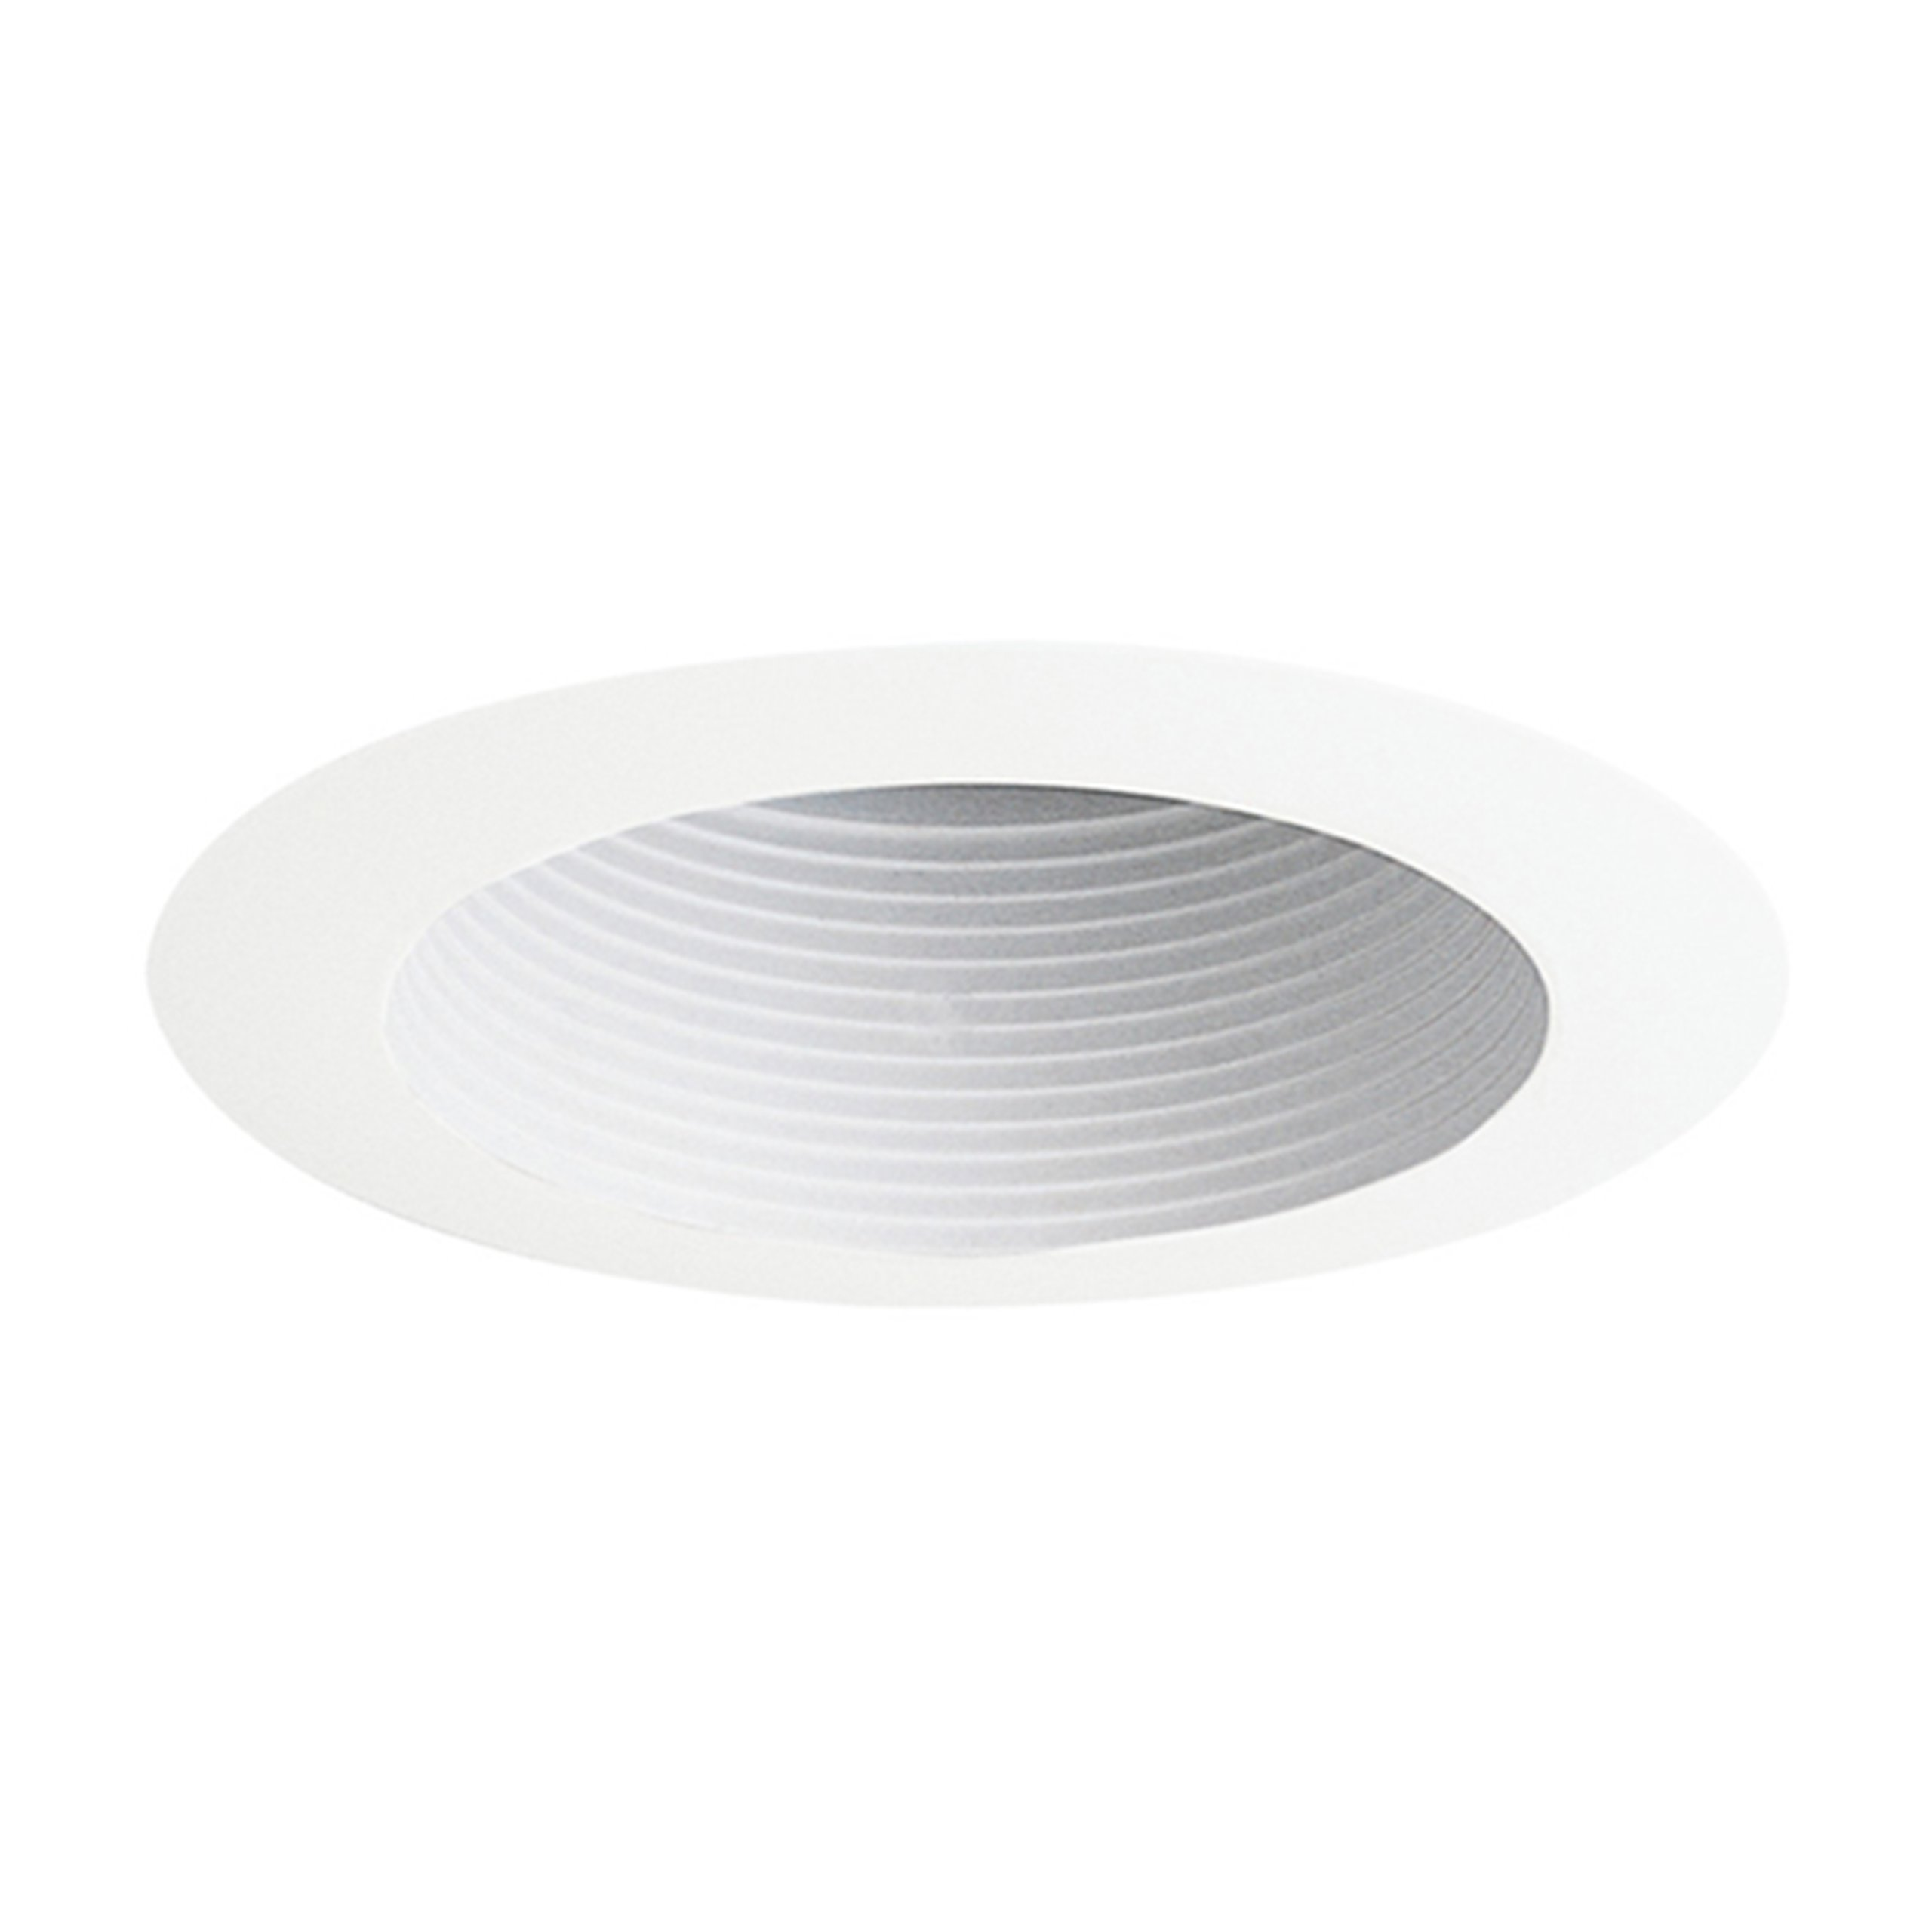 Juno Lighting 444W-WH 4-Inch Adjustable Recessed Trim, White Baffle with White Trim